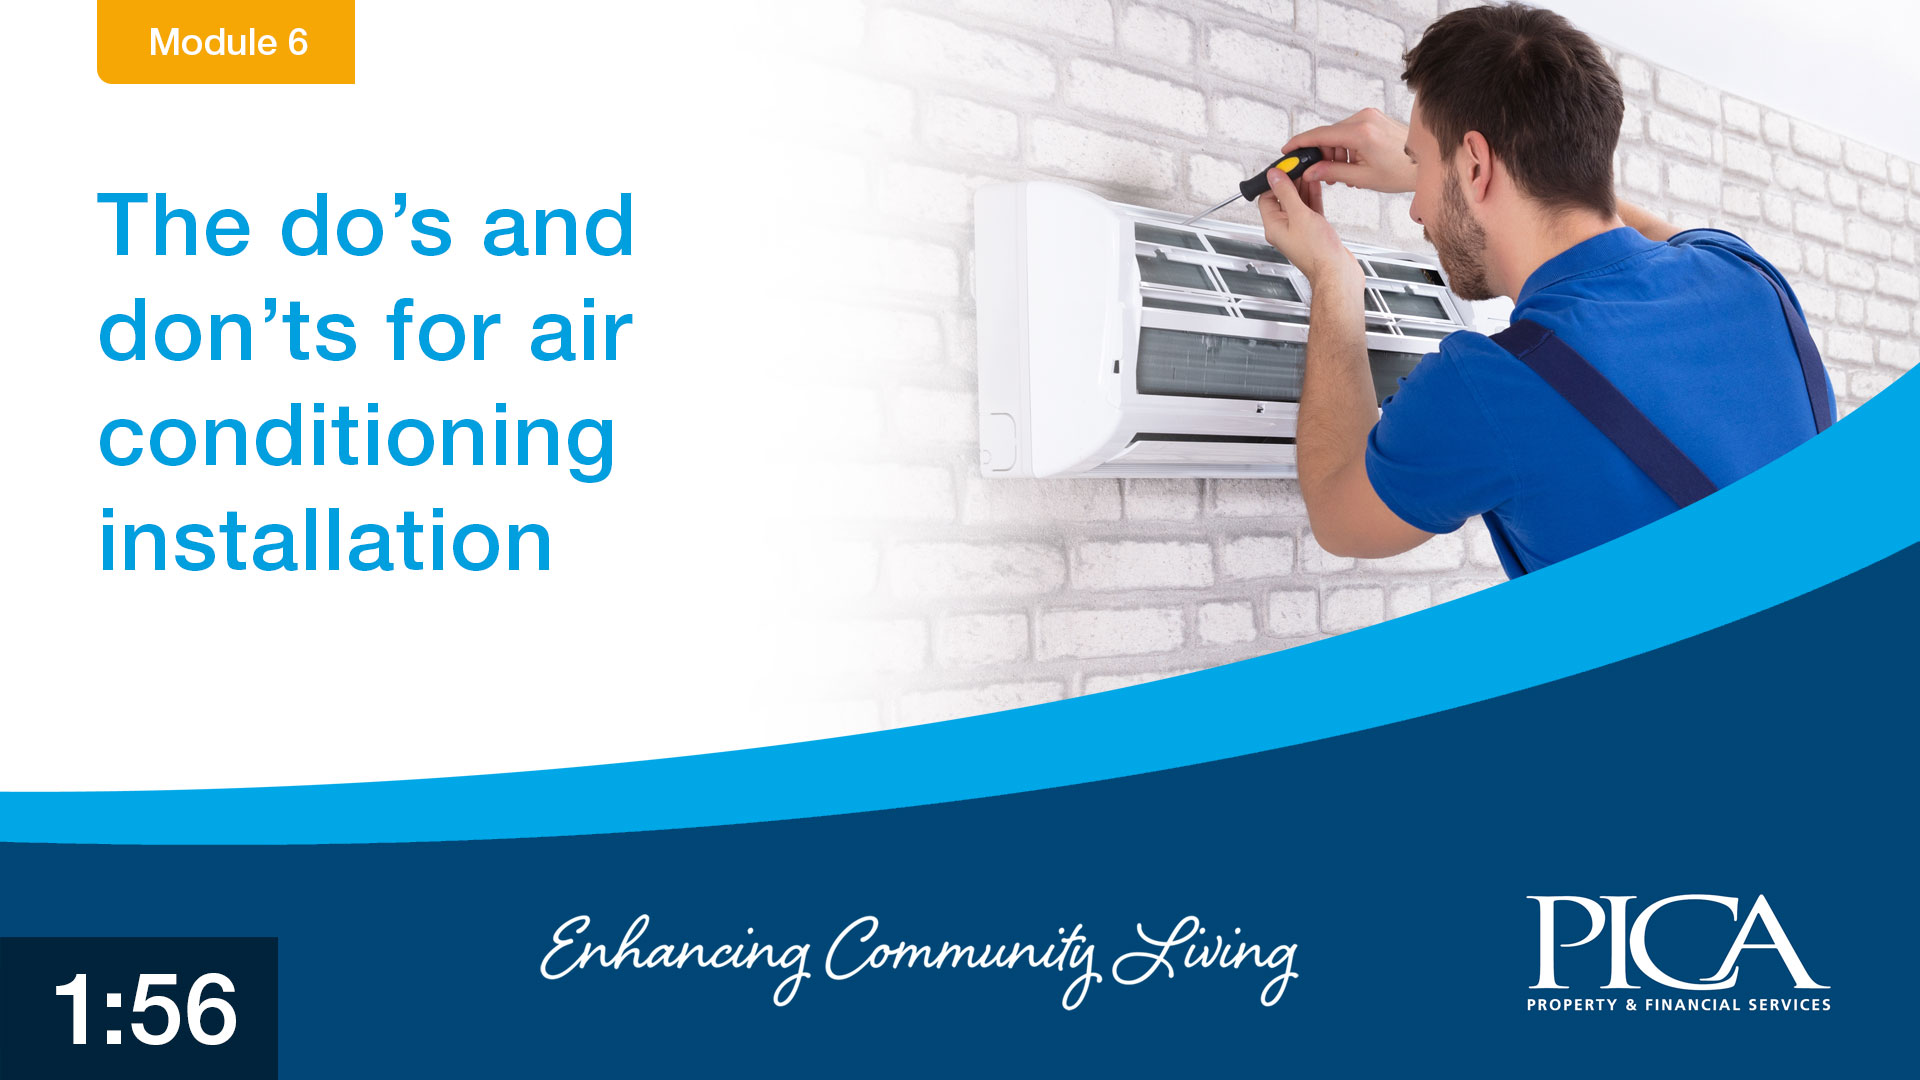 The do's and don'ts for air conditioning installation